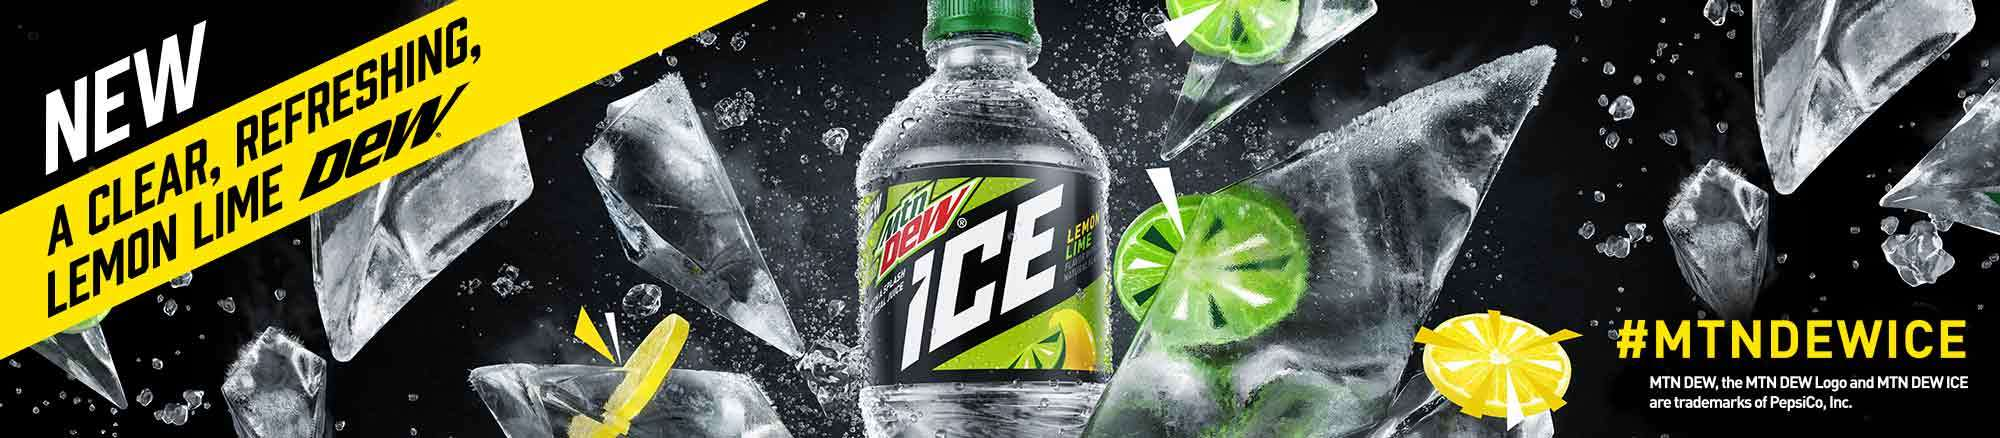 NEW!! A clear, refreshing, lemon-lime DEW!